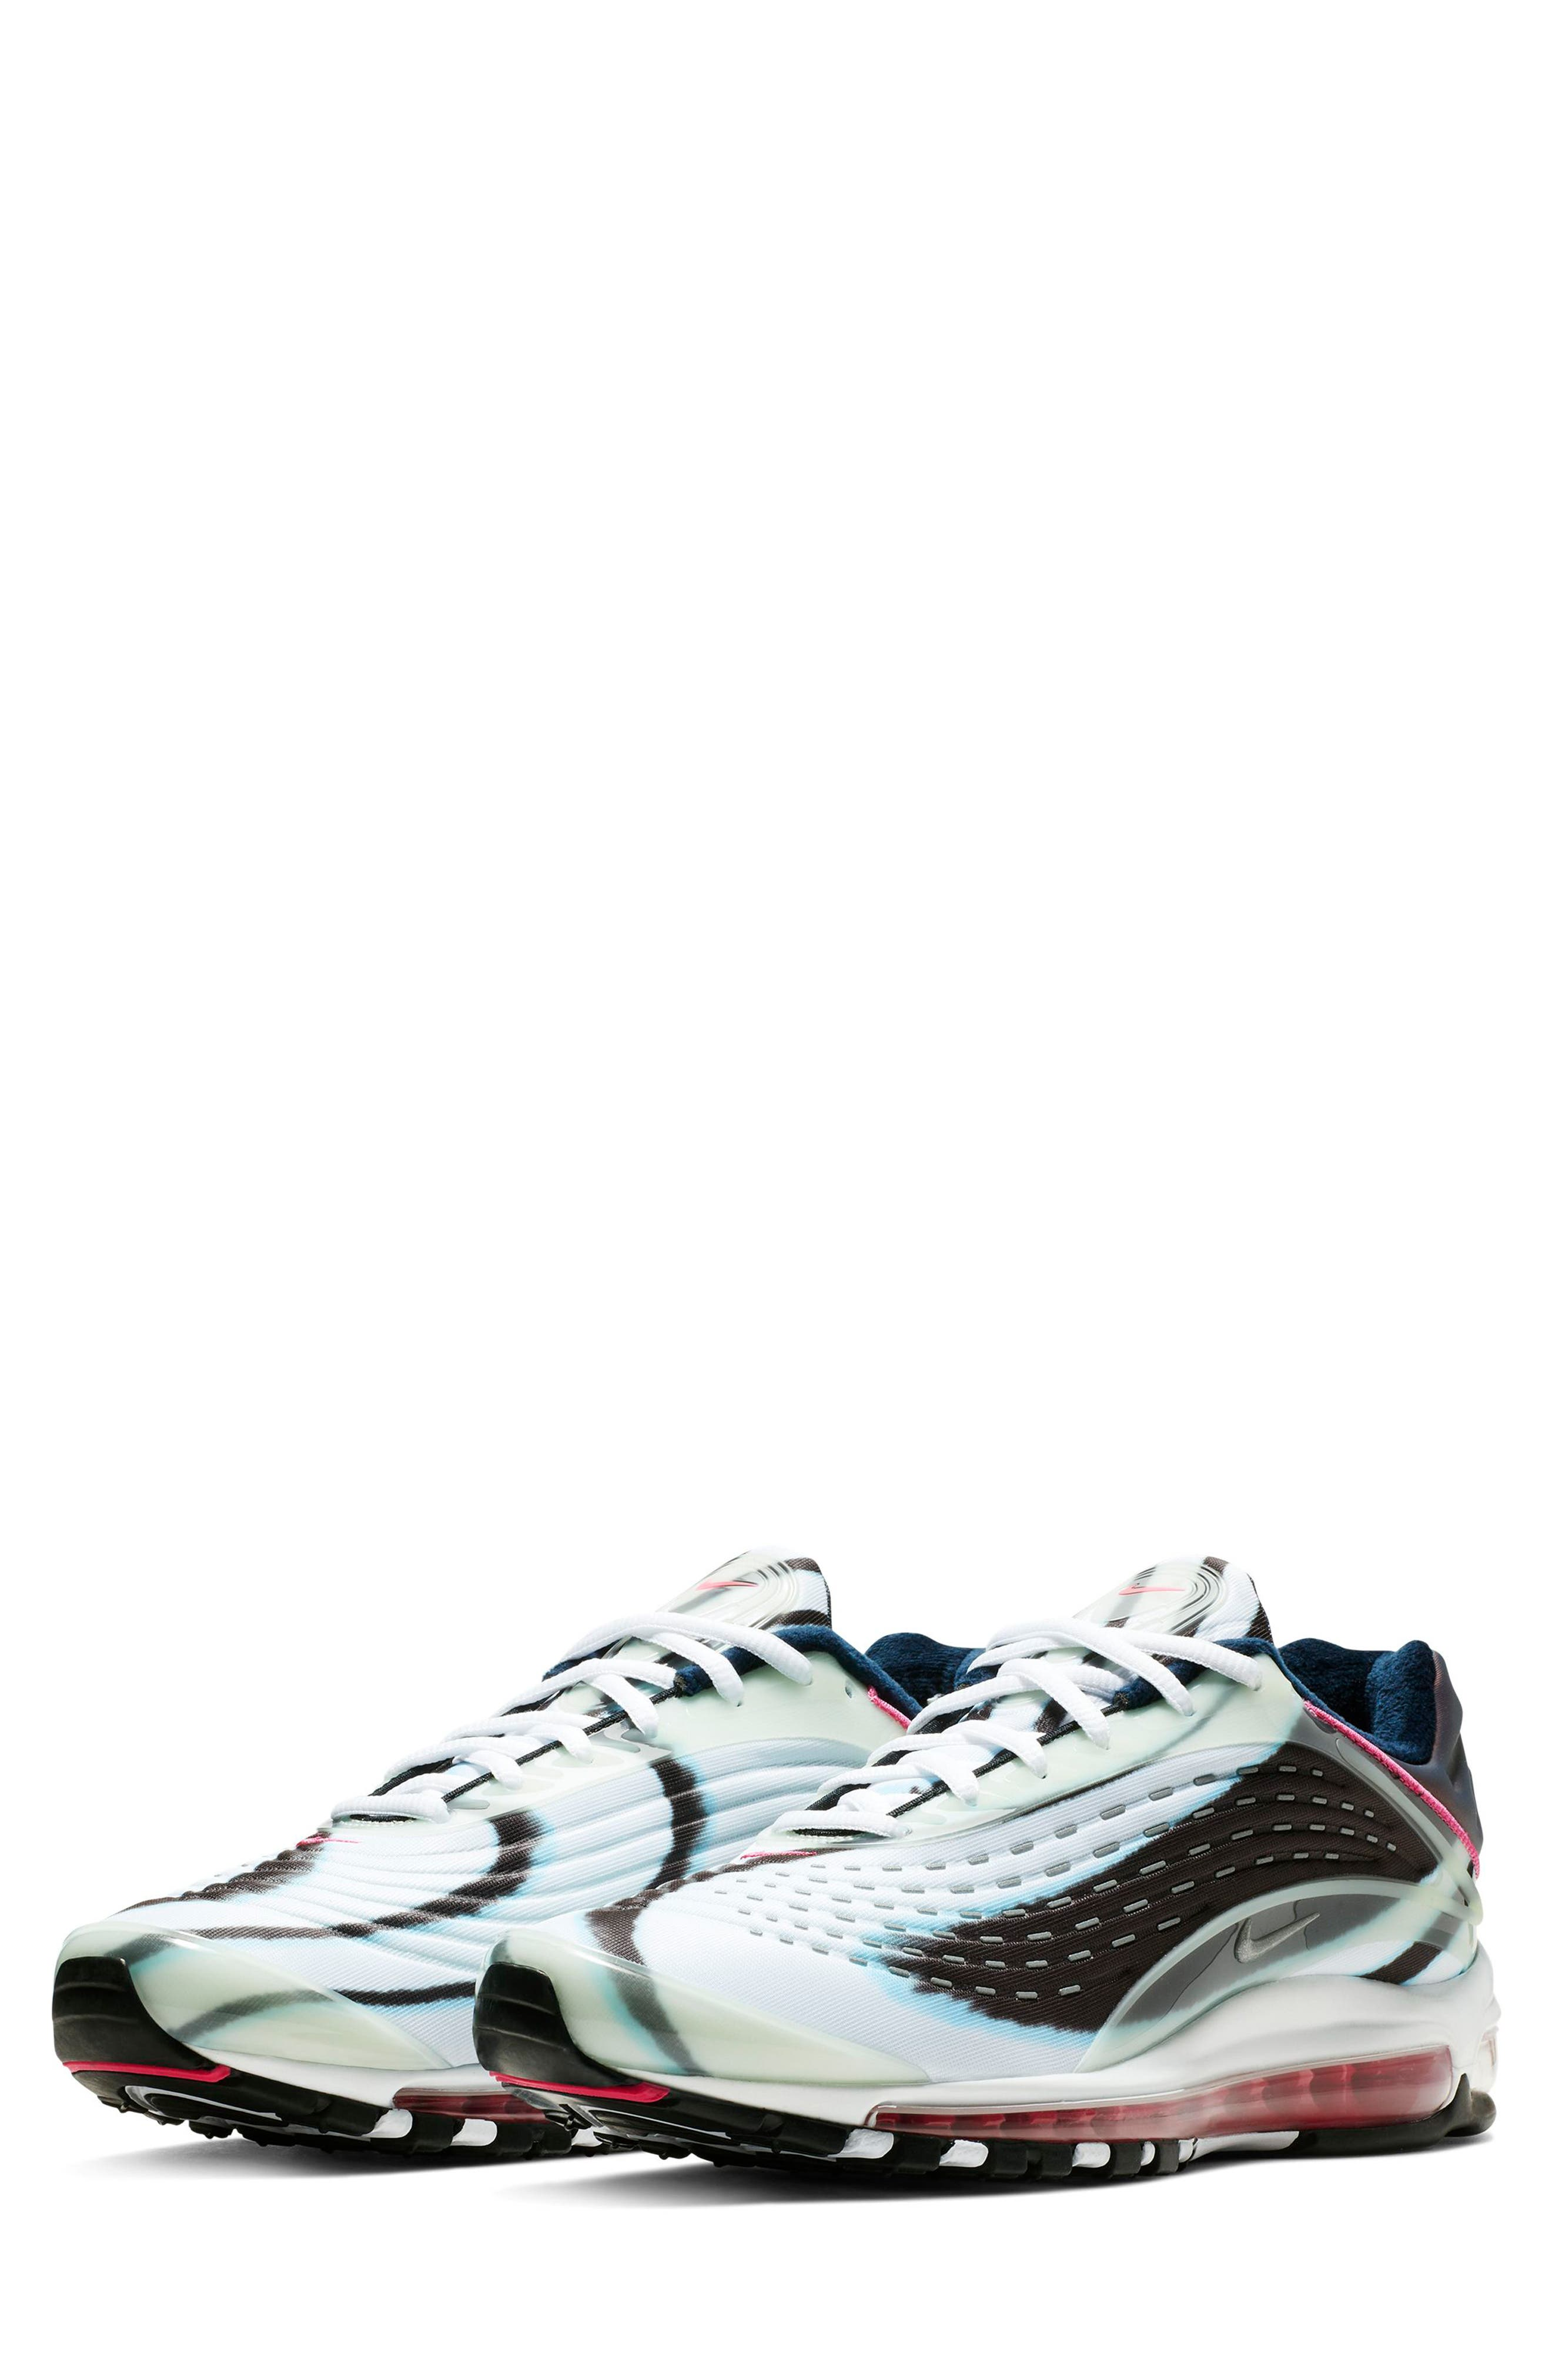 Air Max Deluxe Sneaker,                         Main,                         color, GREEN/ SILVER/ OBSIDIAN/ BLACK